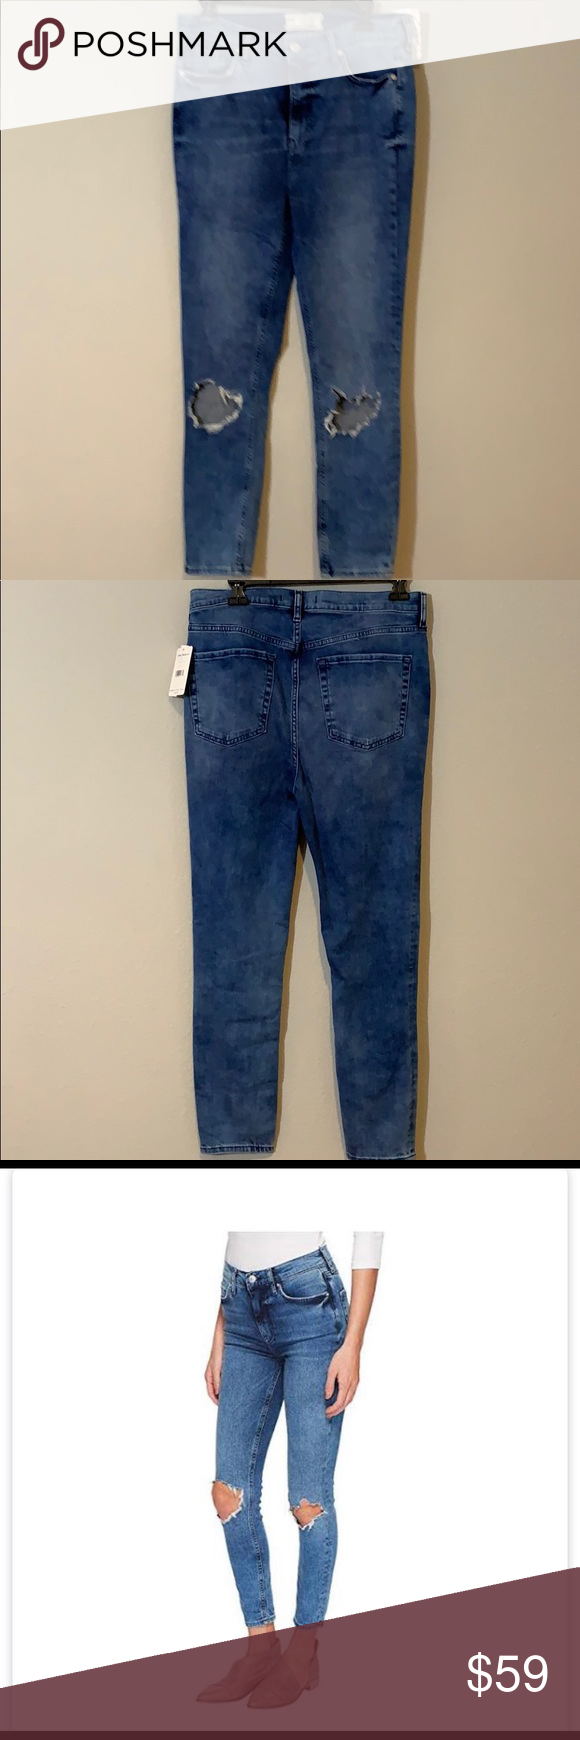 NWT Free People High Rise Skinny Jeans New with Tags Color is turquoise  See pics for approx measurements  Bin18 #1190/4/23 Free People Jeans Skinny